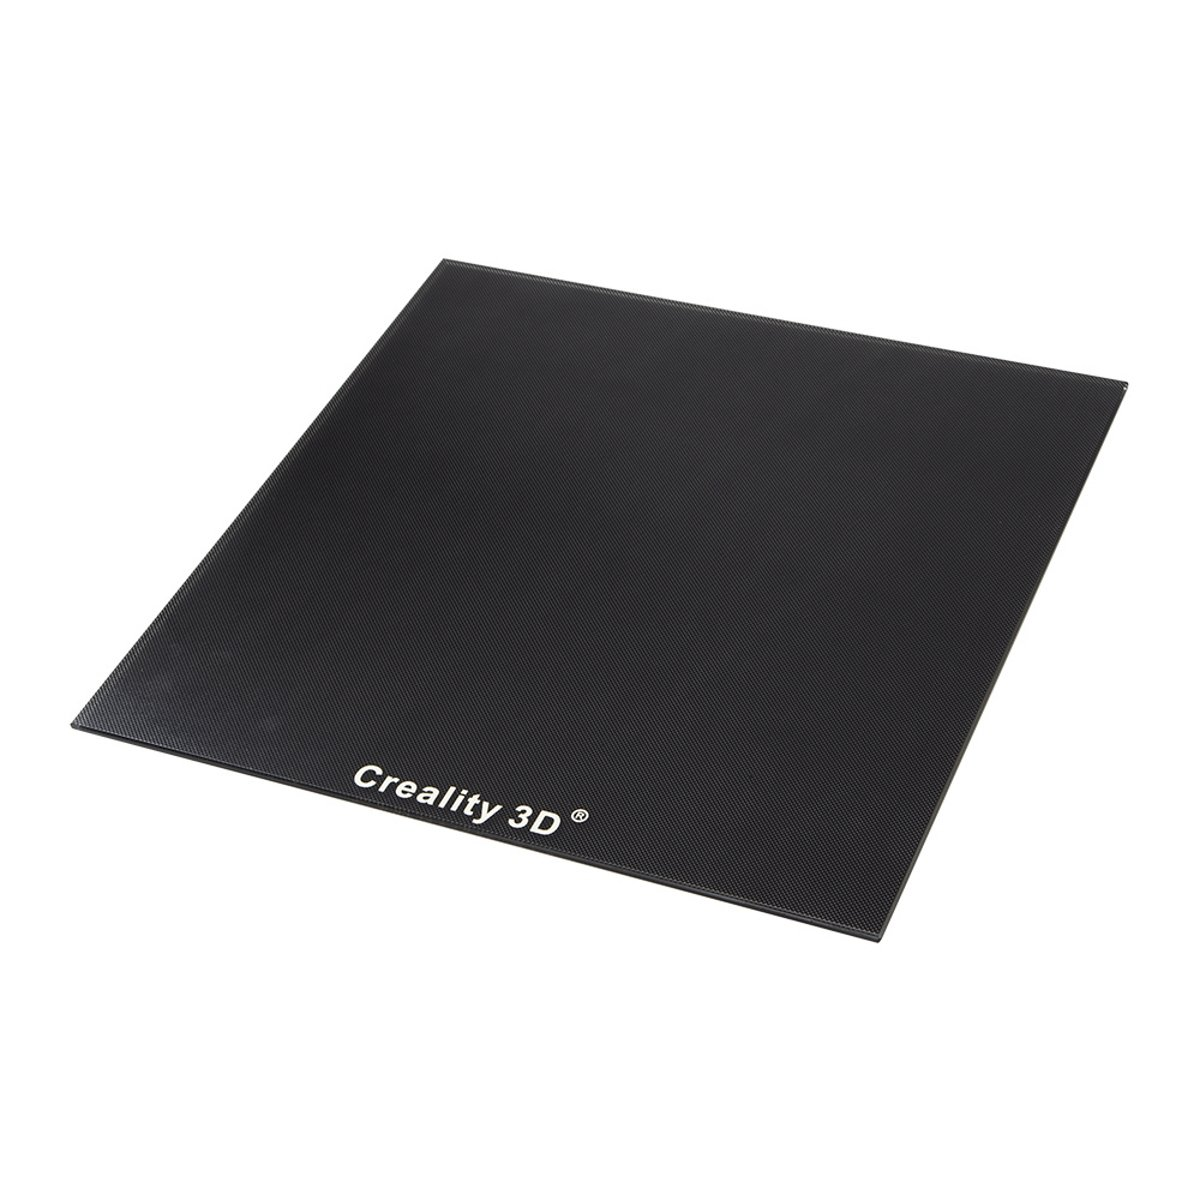 Billede af Creality 3D Ender-3 Glass Plate with special chemical coating 235 x 235